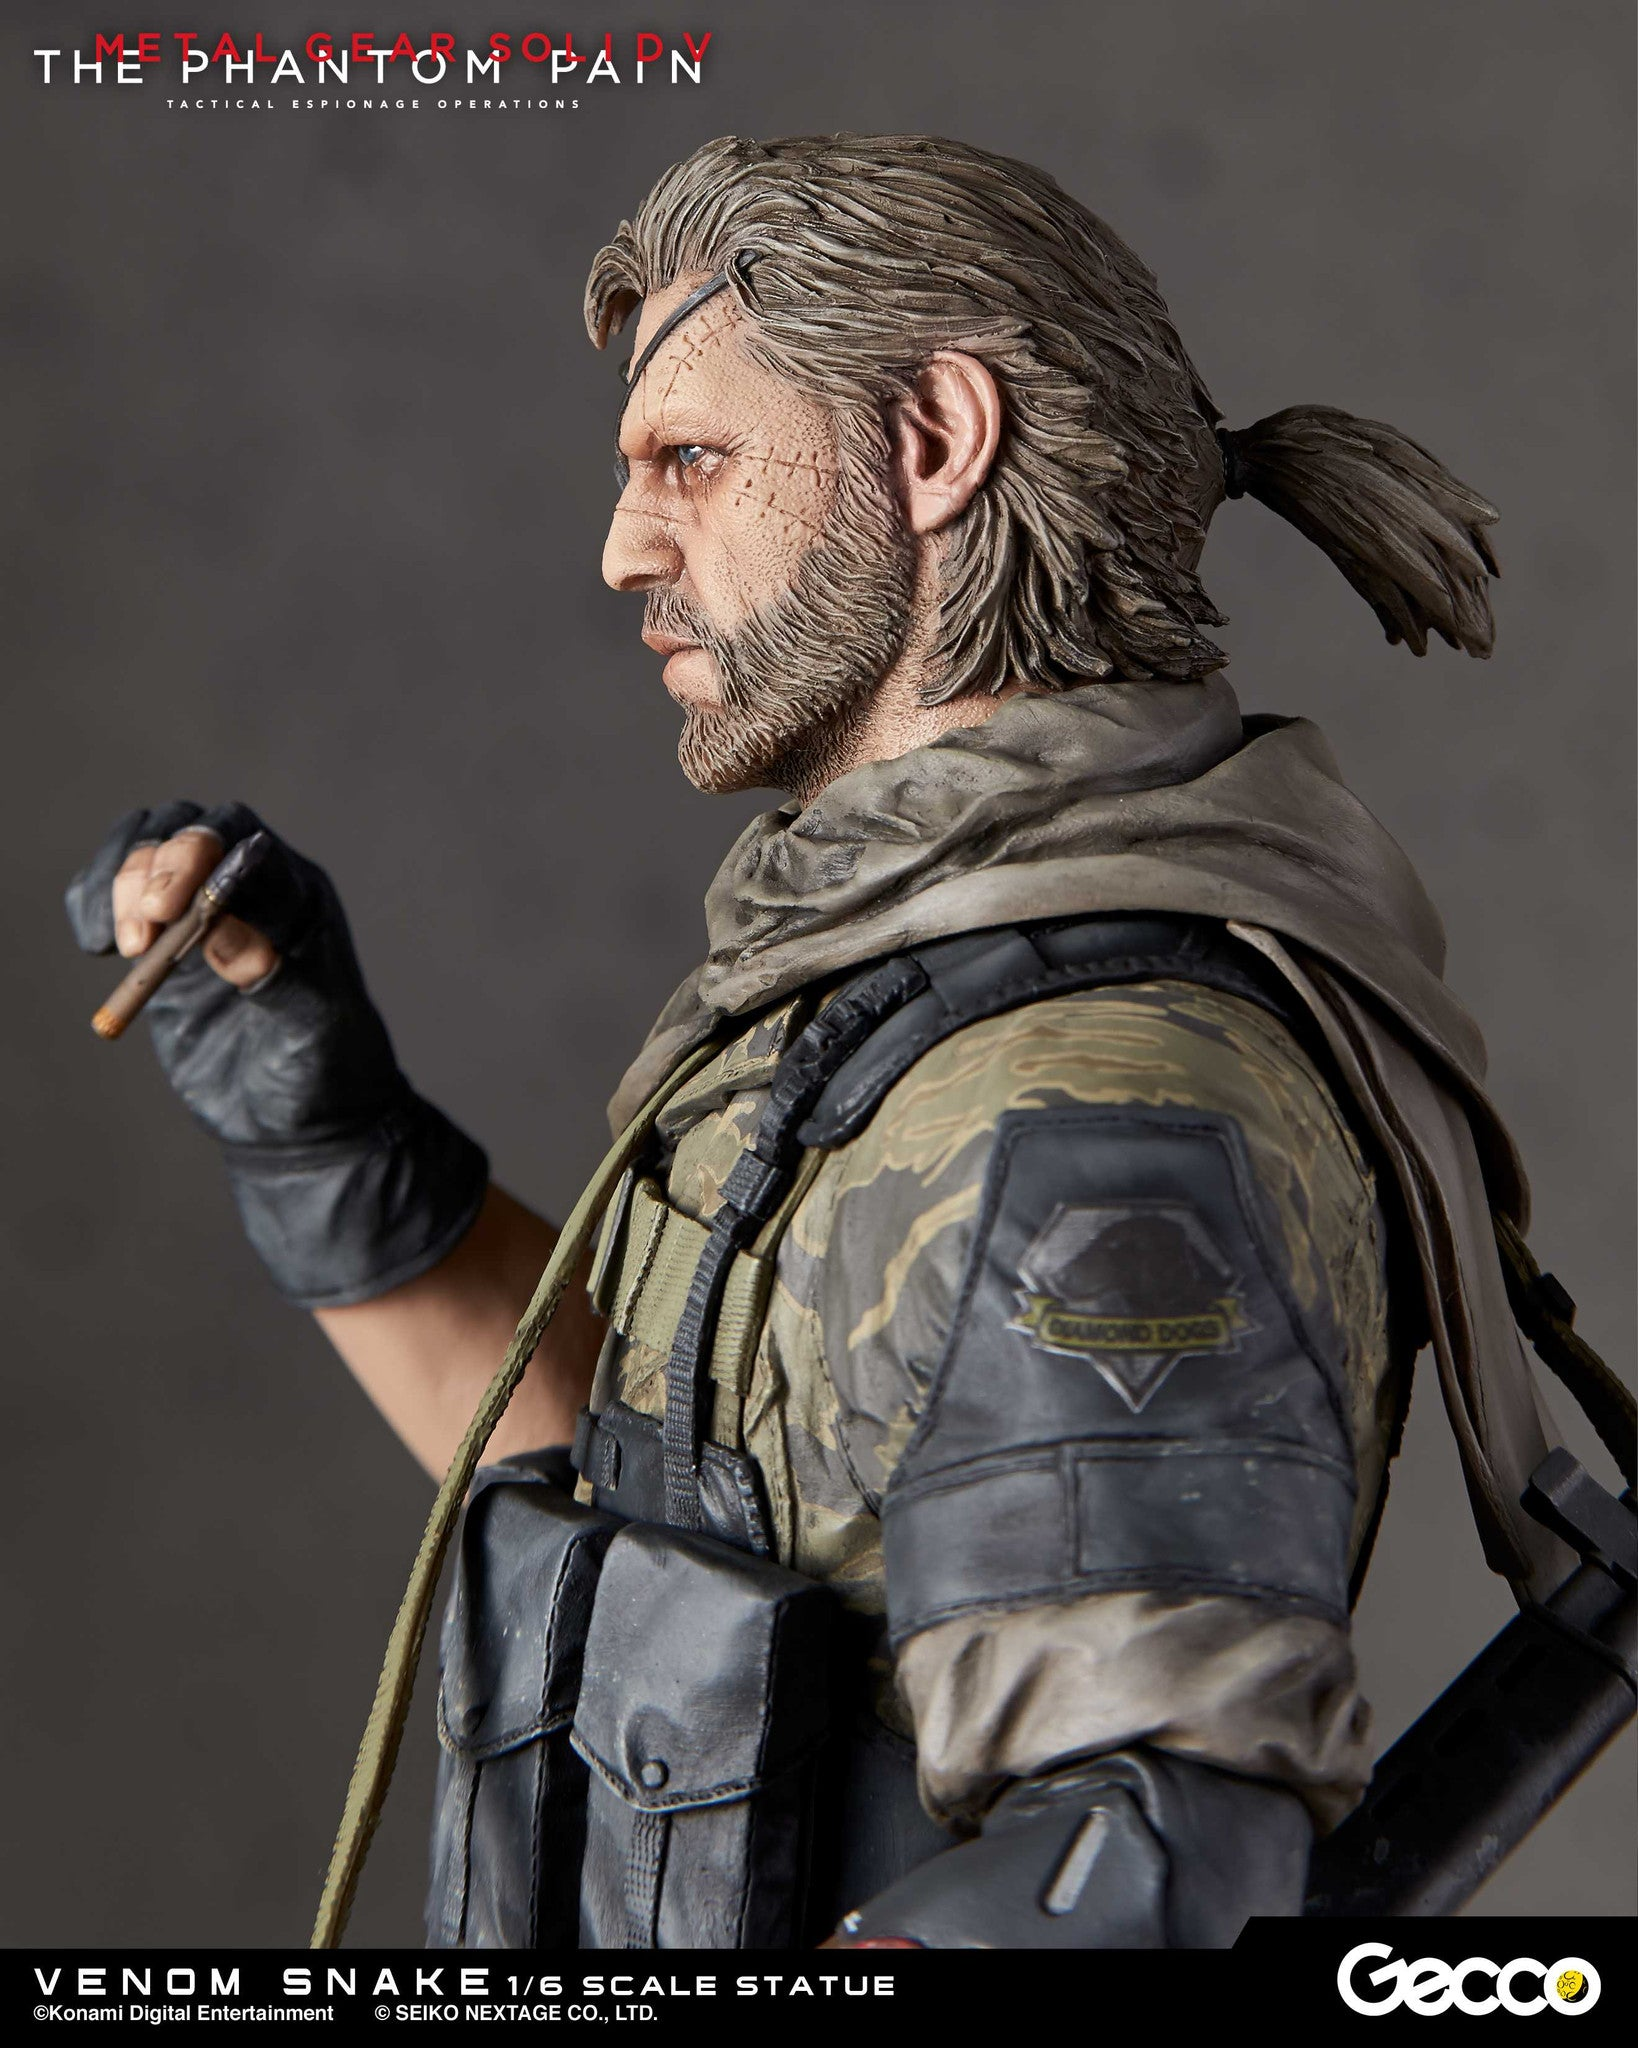 Gecco - Metal Gear Solid V: The Phantom Pain - Venom Snake 1/6 Scale Statue - Marvelous Toys - 9